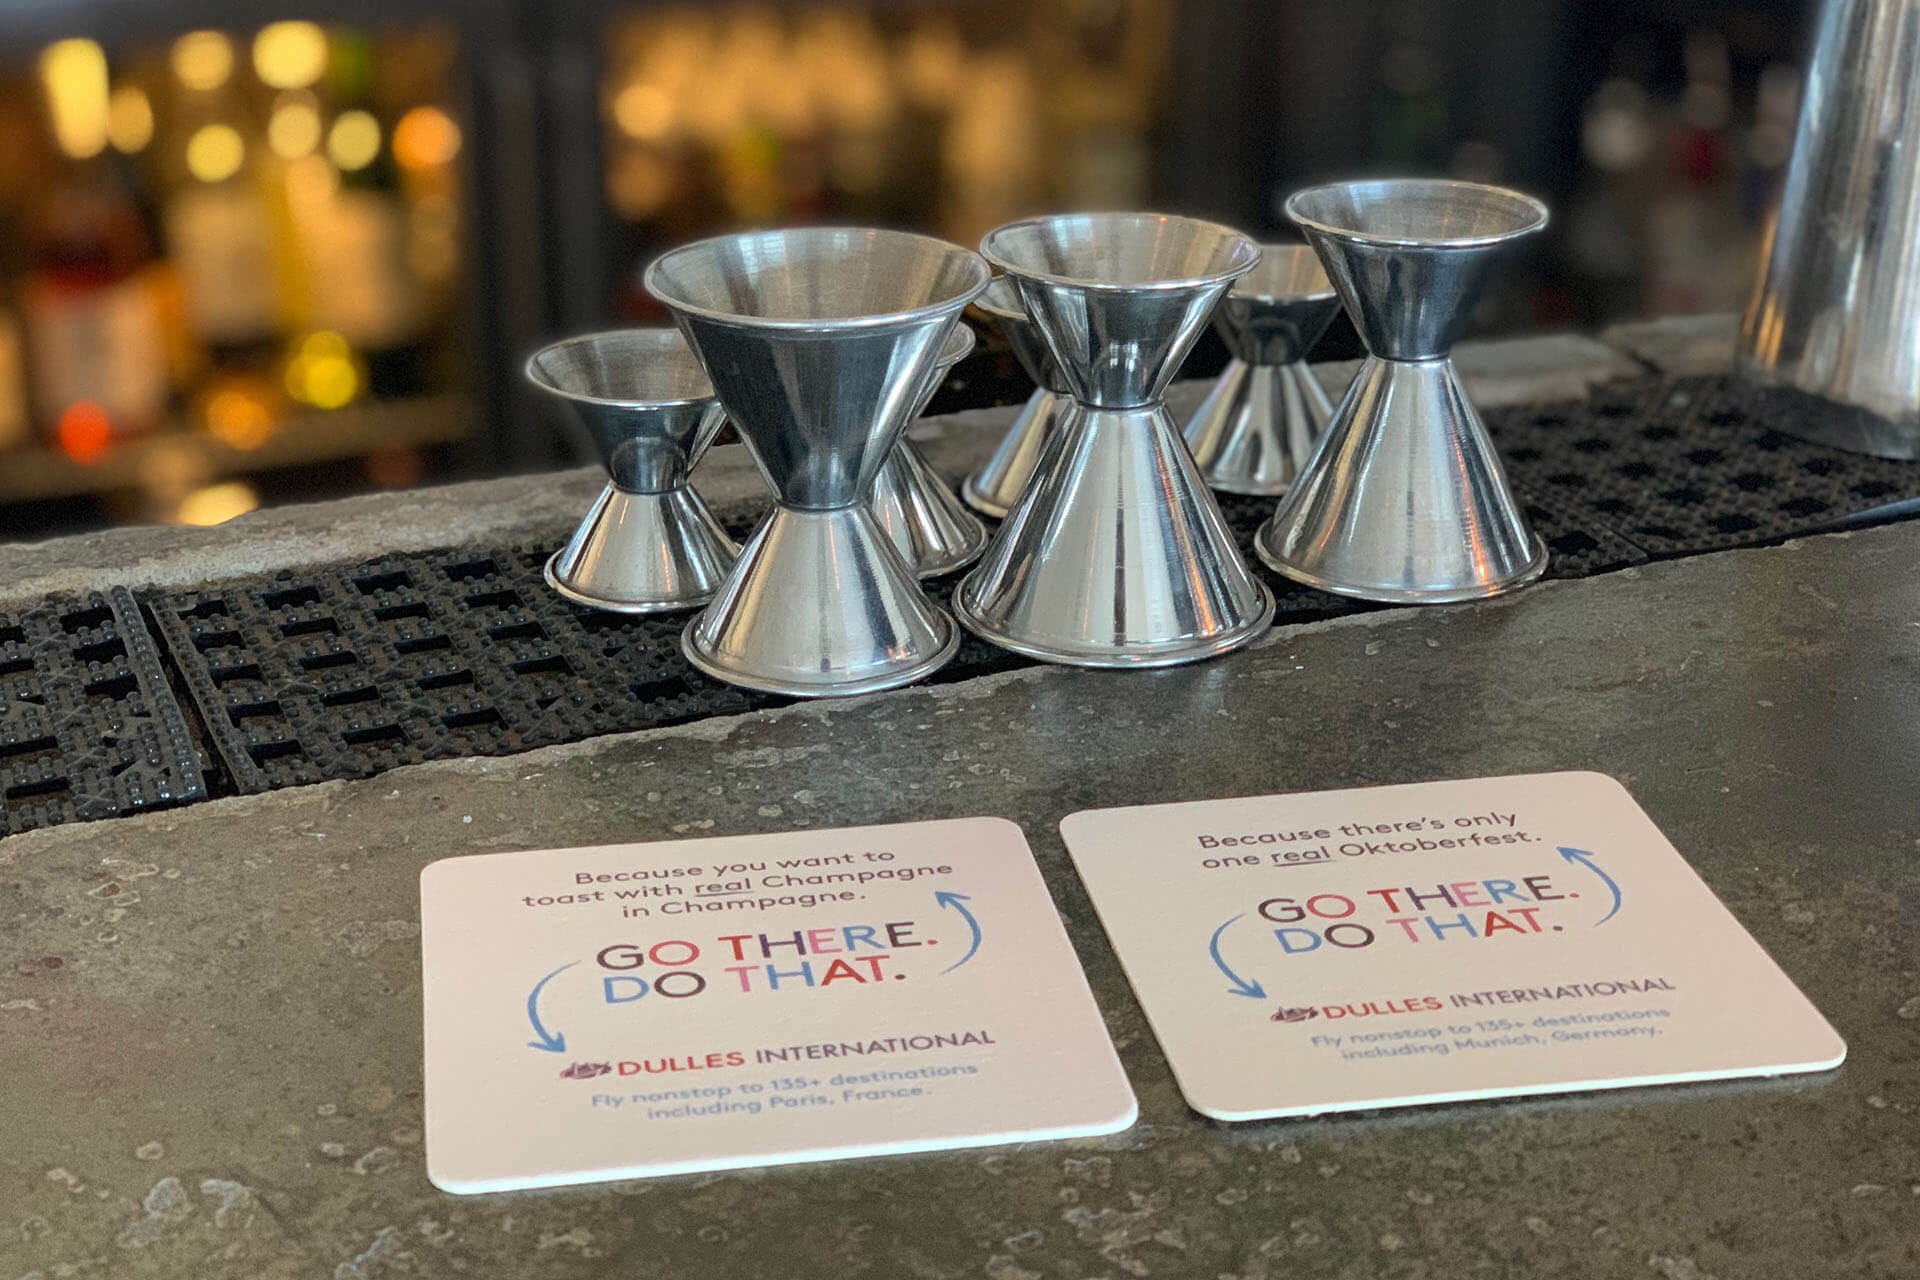 OOH advertising with coasters at bars or restaurants